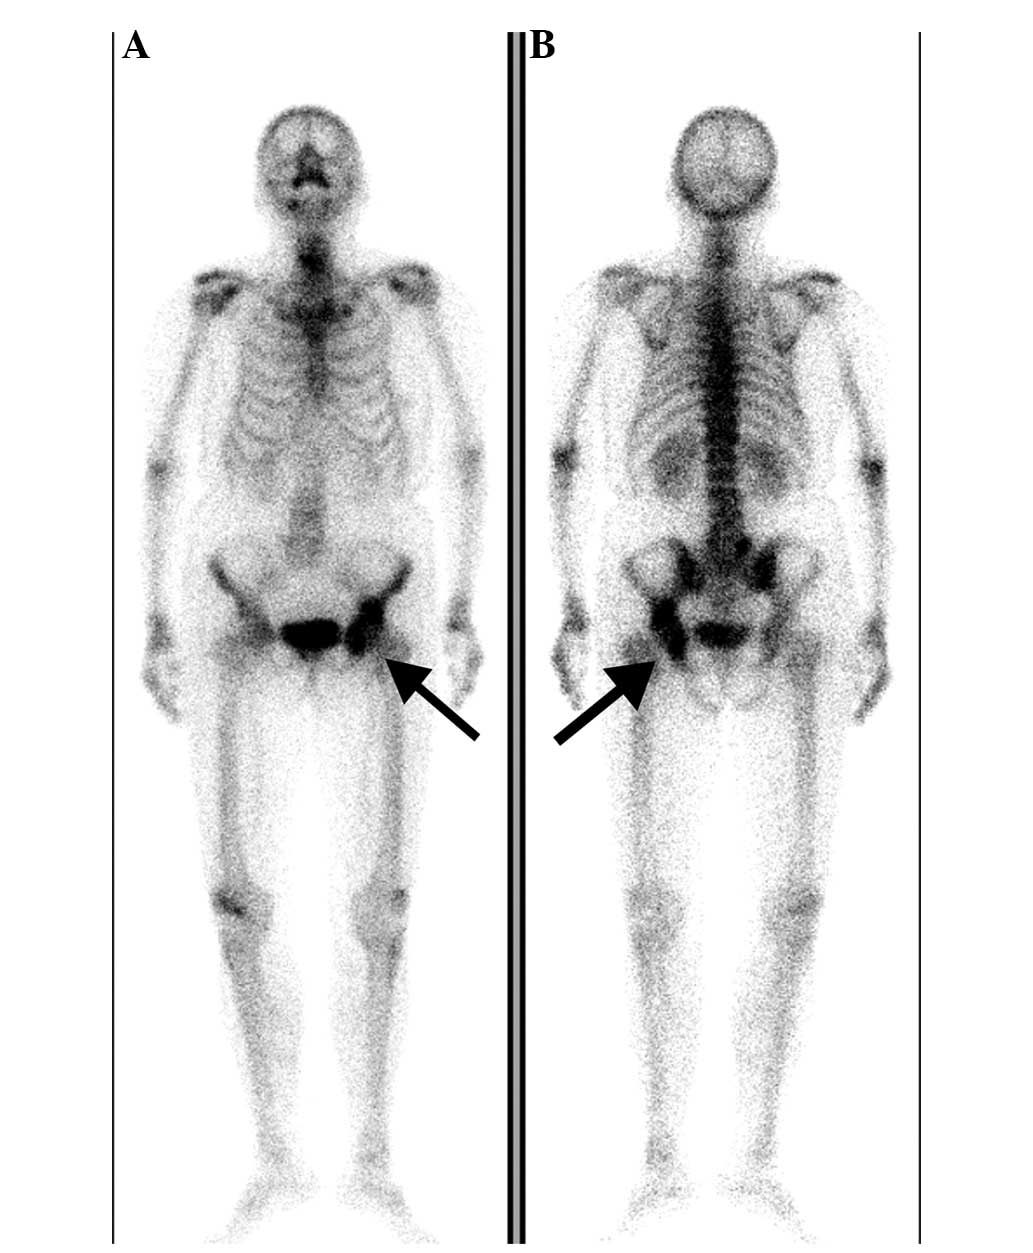 Primary bone lymphoma: A case report and review of the